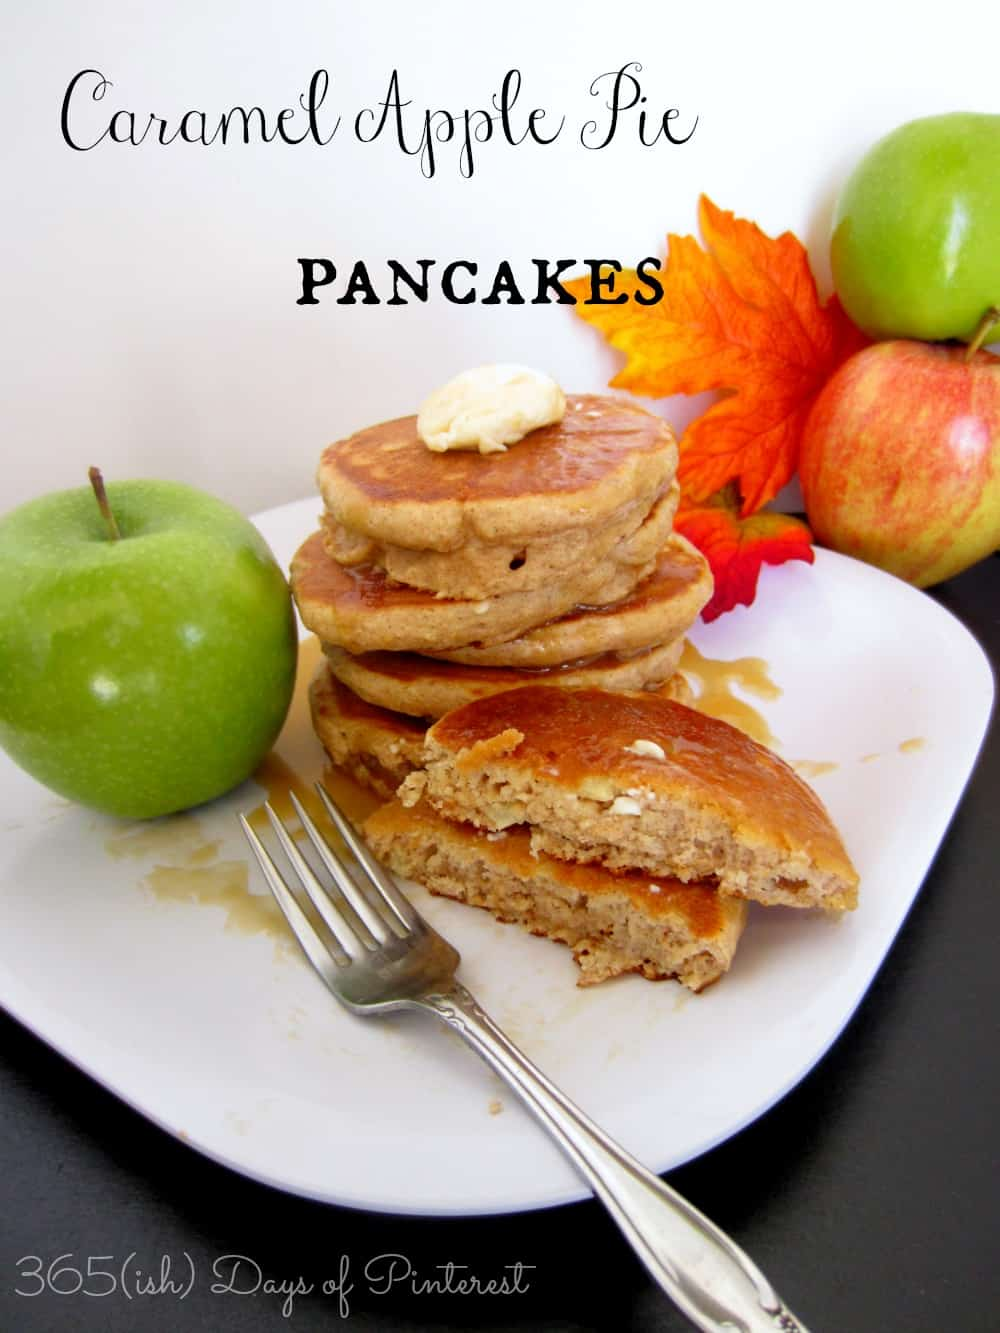 caramel apple pie pancakes